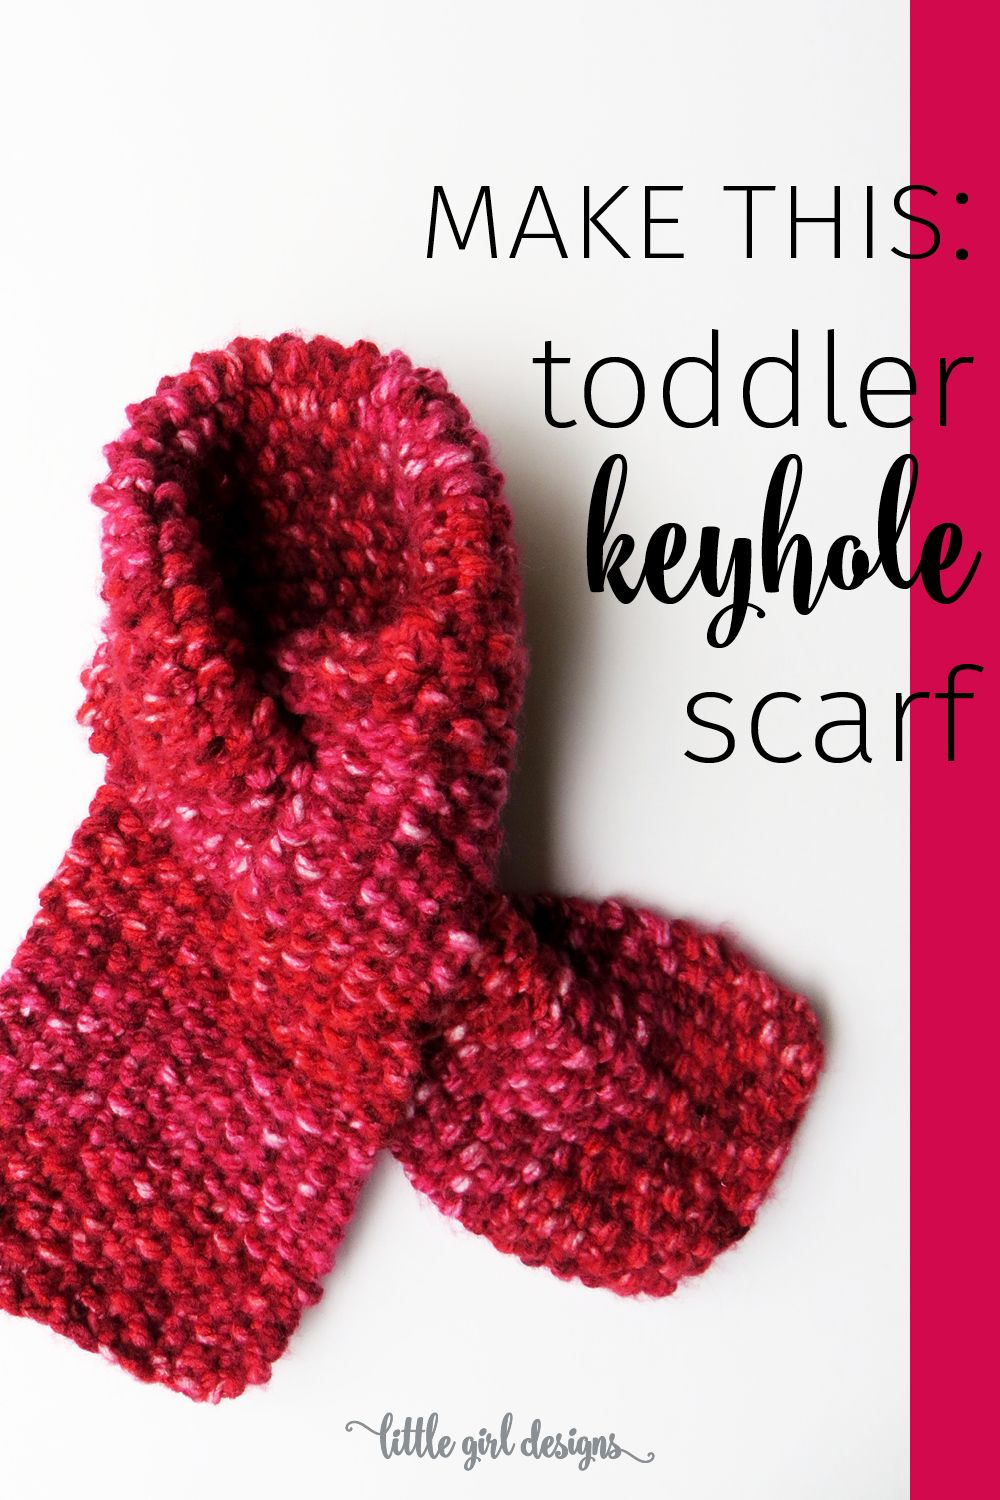 Toddler Keyhole Scarf Knitting Pattern Knitting Knitting